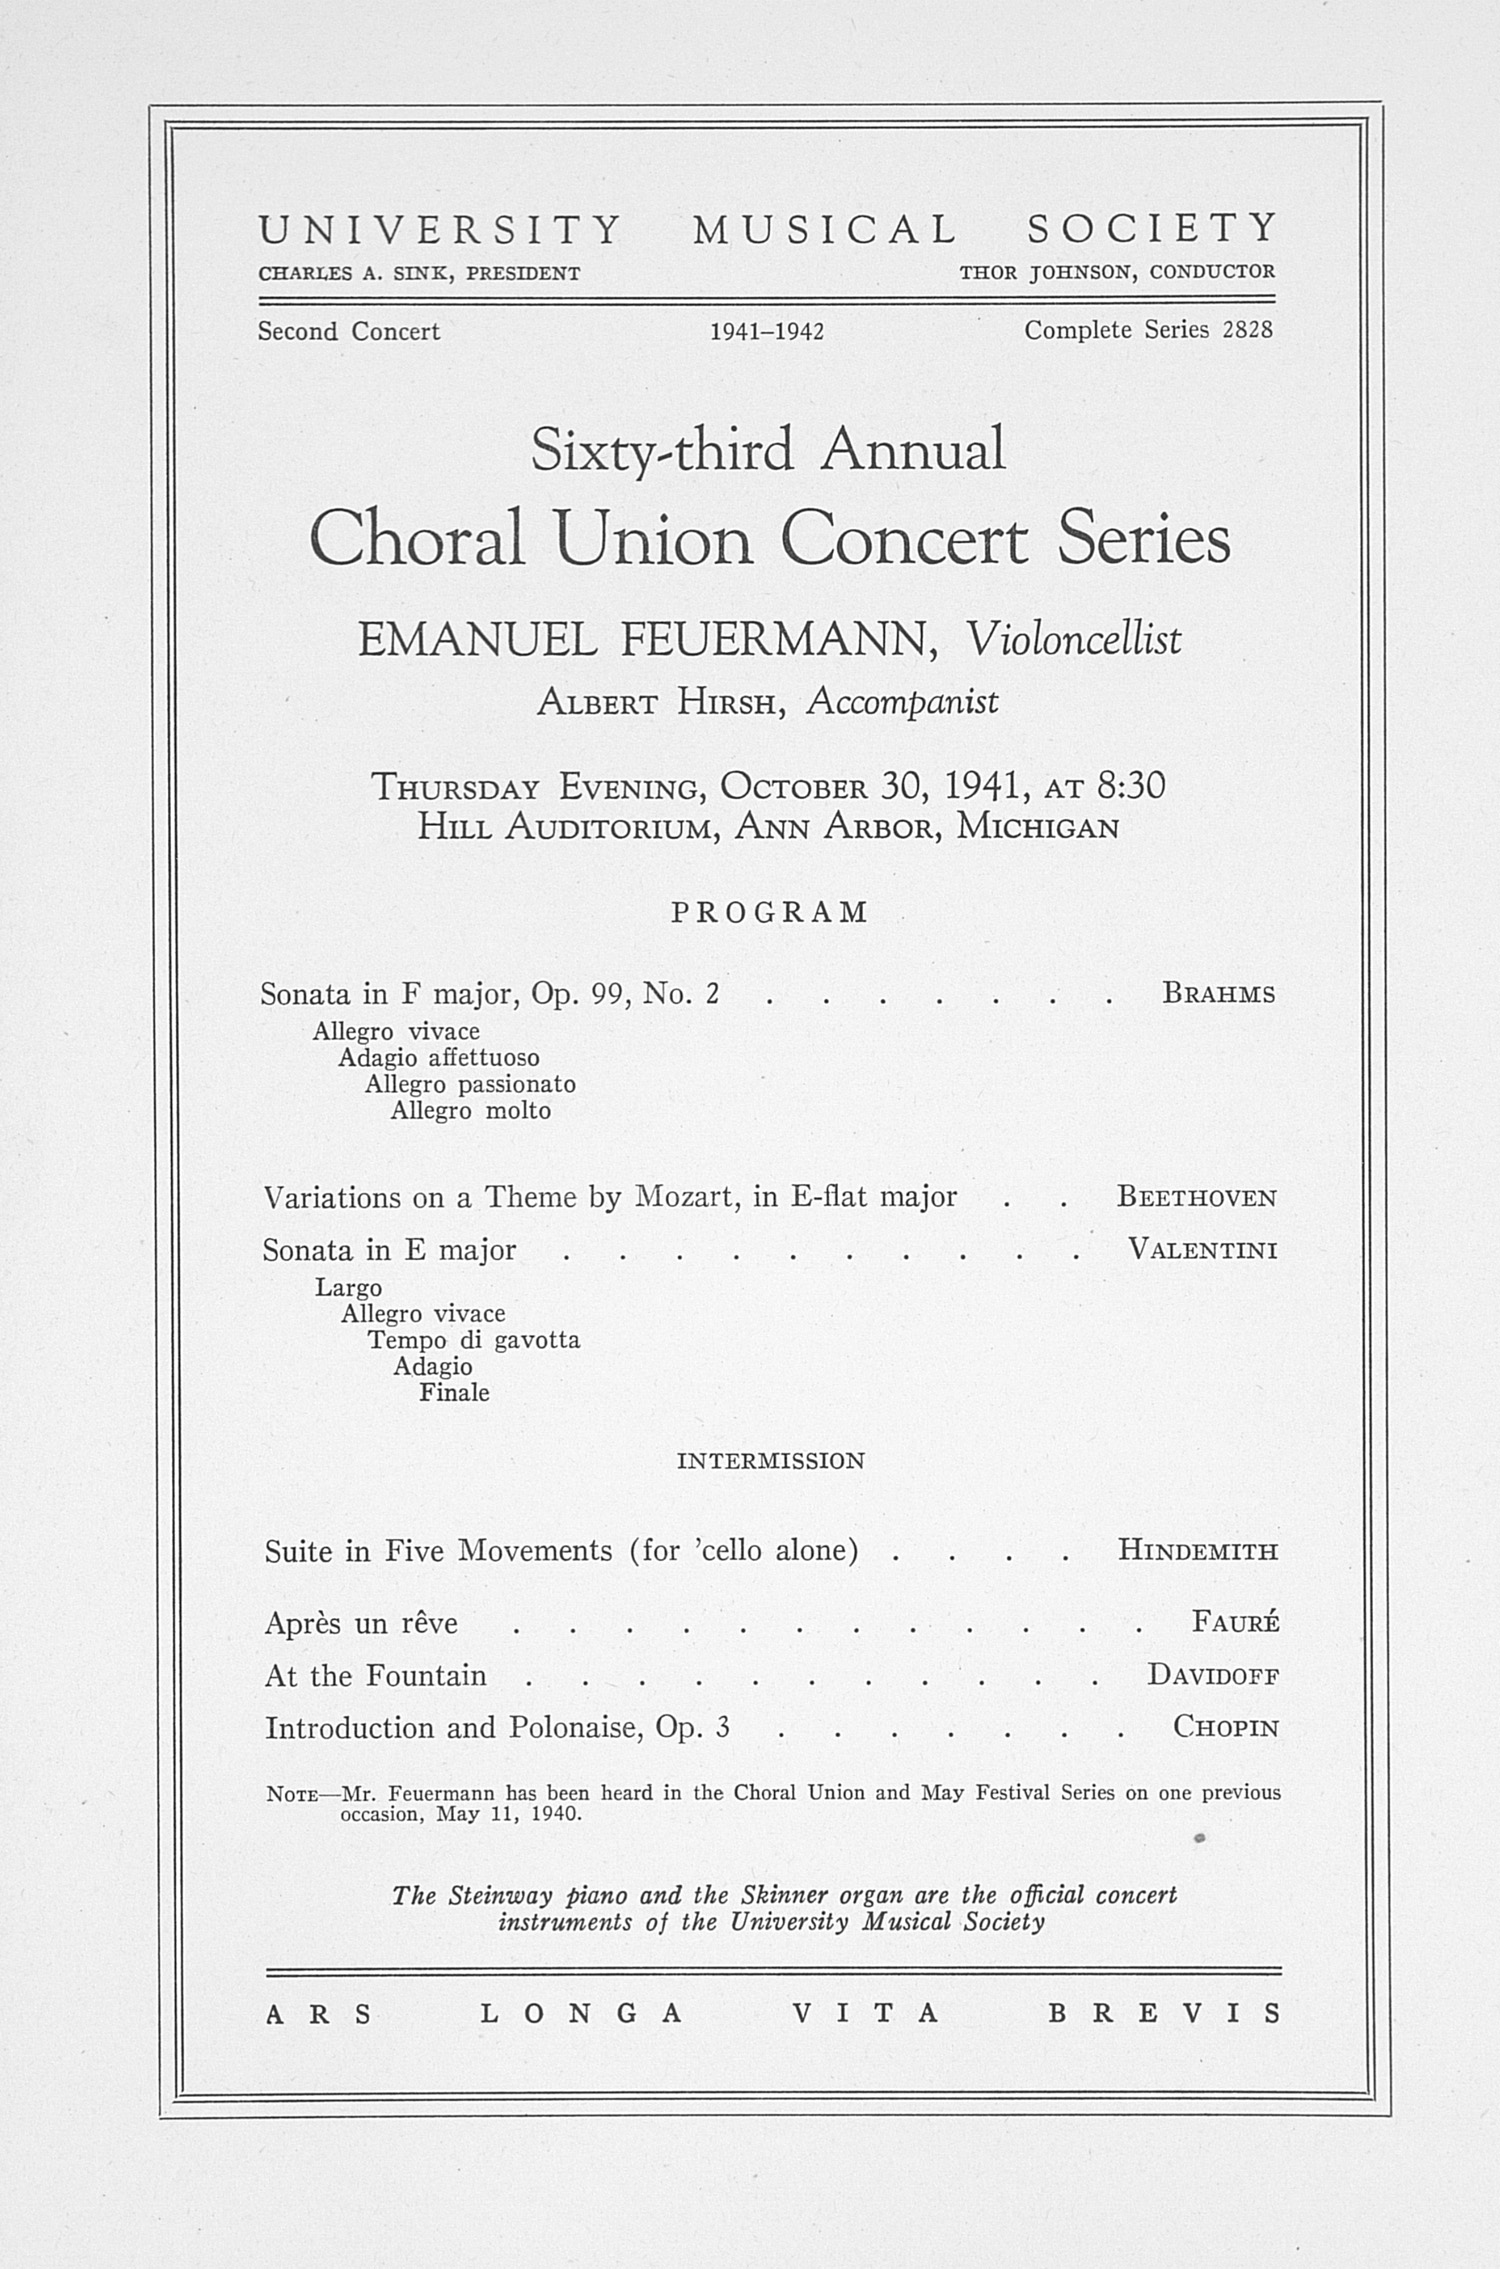 UMS Concert Program, October 30, 1941: Sixty-third Annual Choral Union Concert Series -- Emanuel Feuermann image